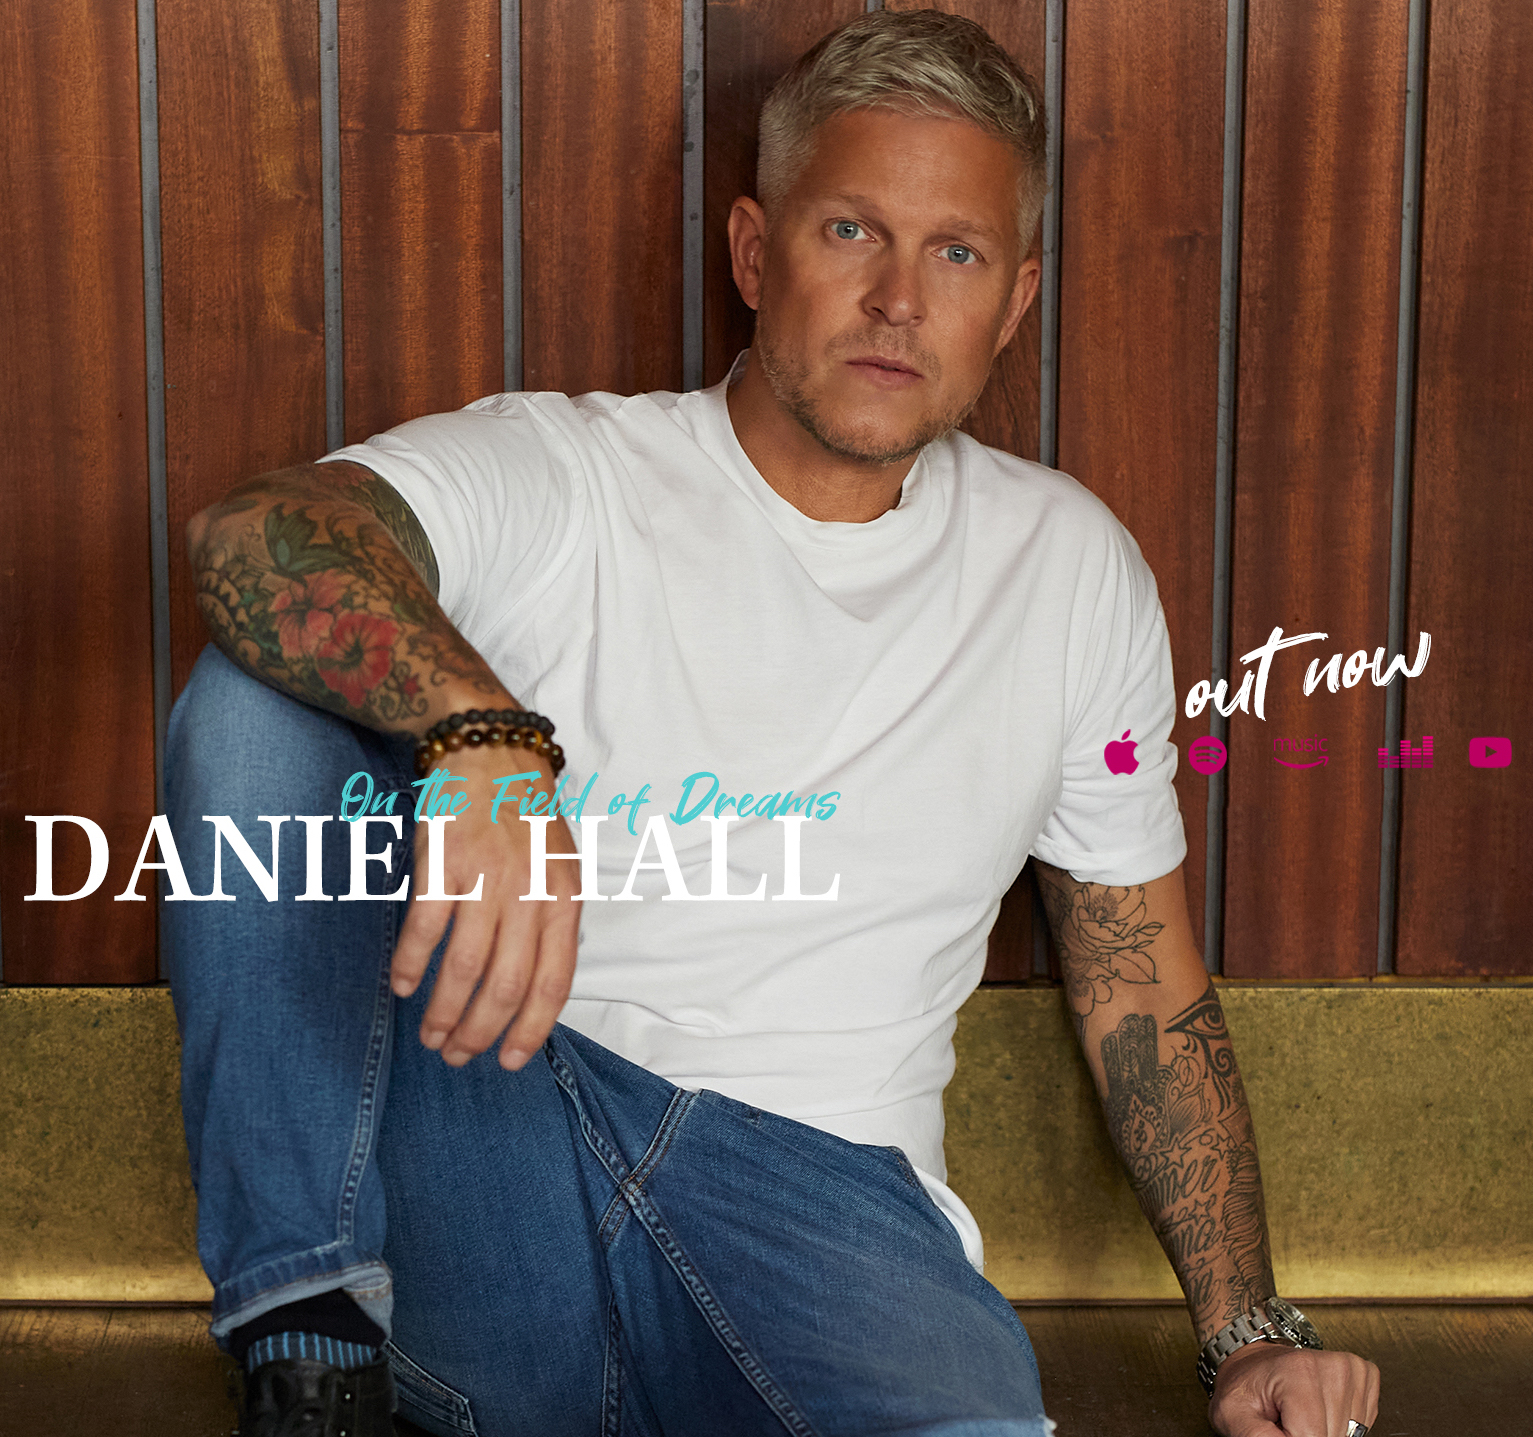 Daniel_Hall_ohneTelekom_out_now